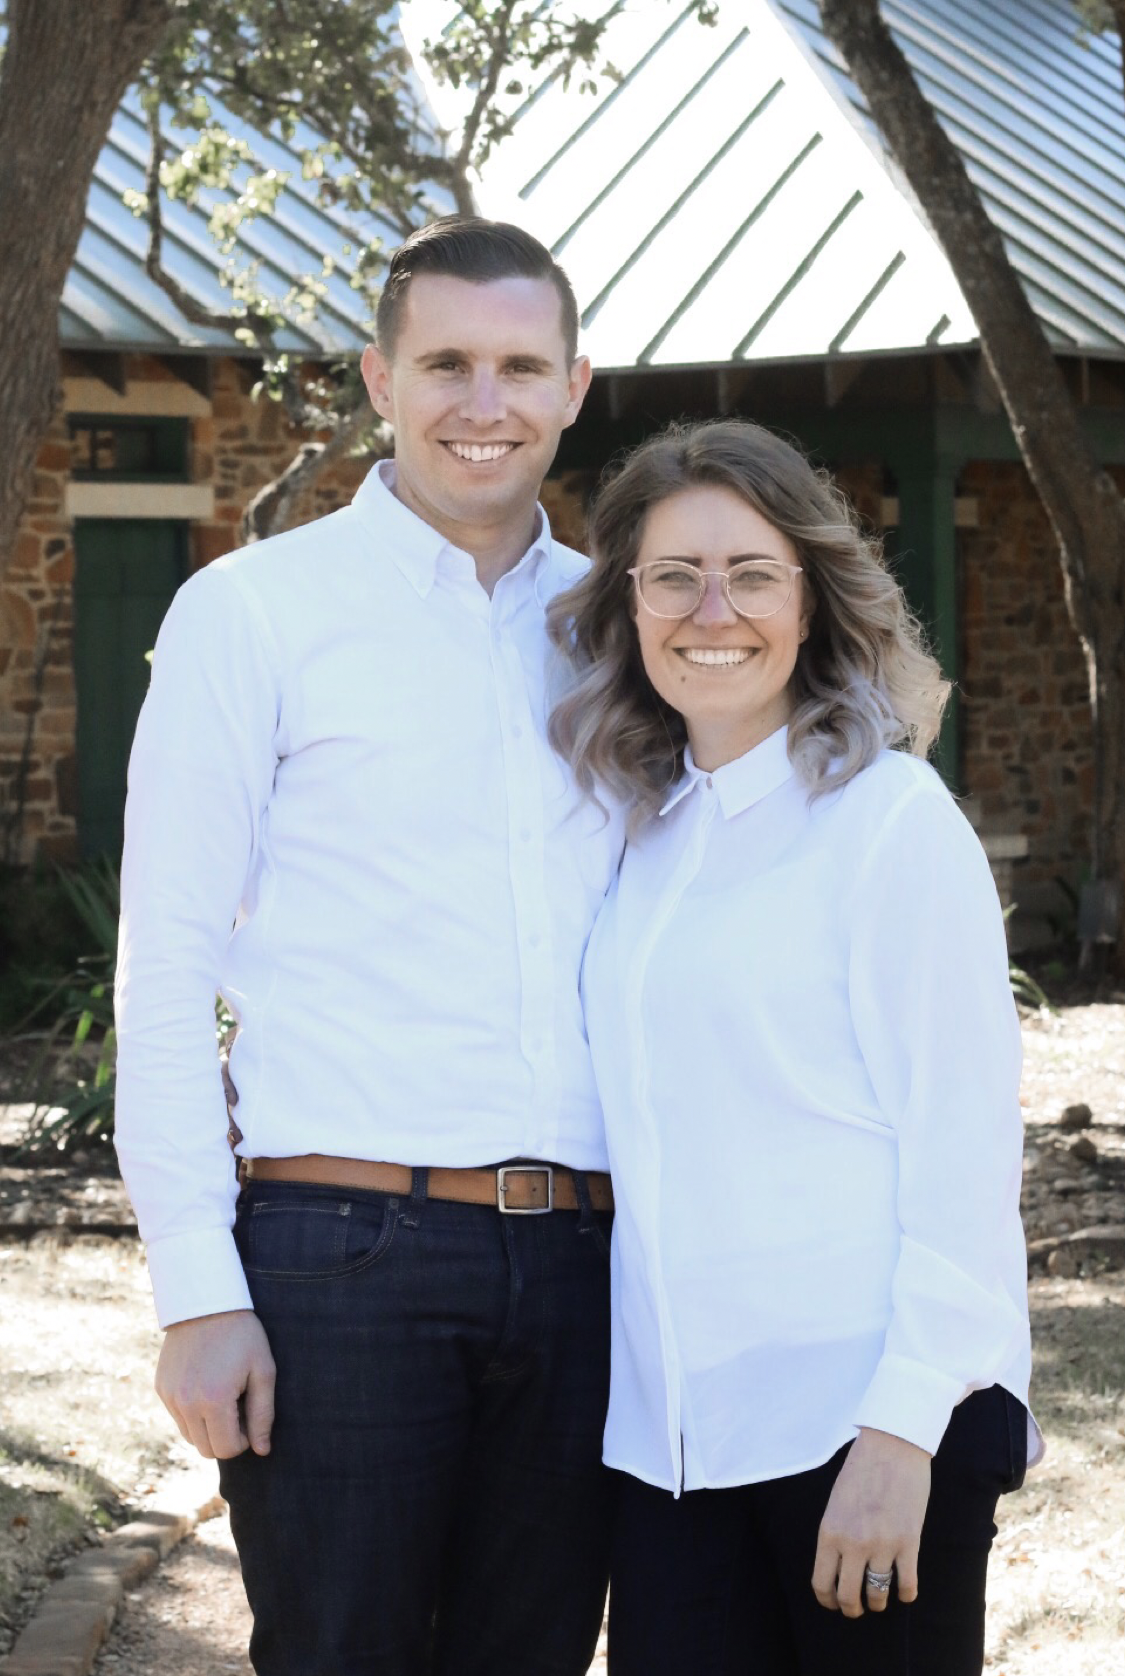 Michael & Luda Langford  Dream Team Pastor   Luda is our Dream Team Pastor working with our Dream Team to make the vision come alive. Michael is a real estate agent and is the coach of our Usher Dream Team. Together they have a passion to see people get connected and Make a Difference!